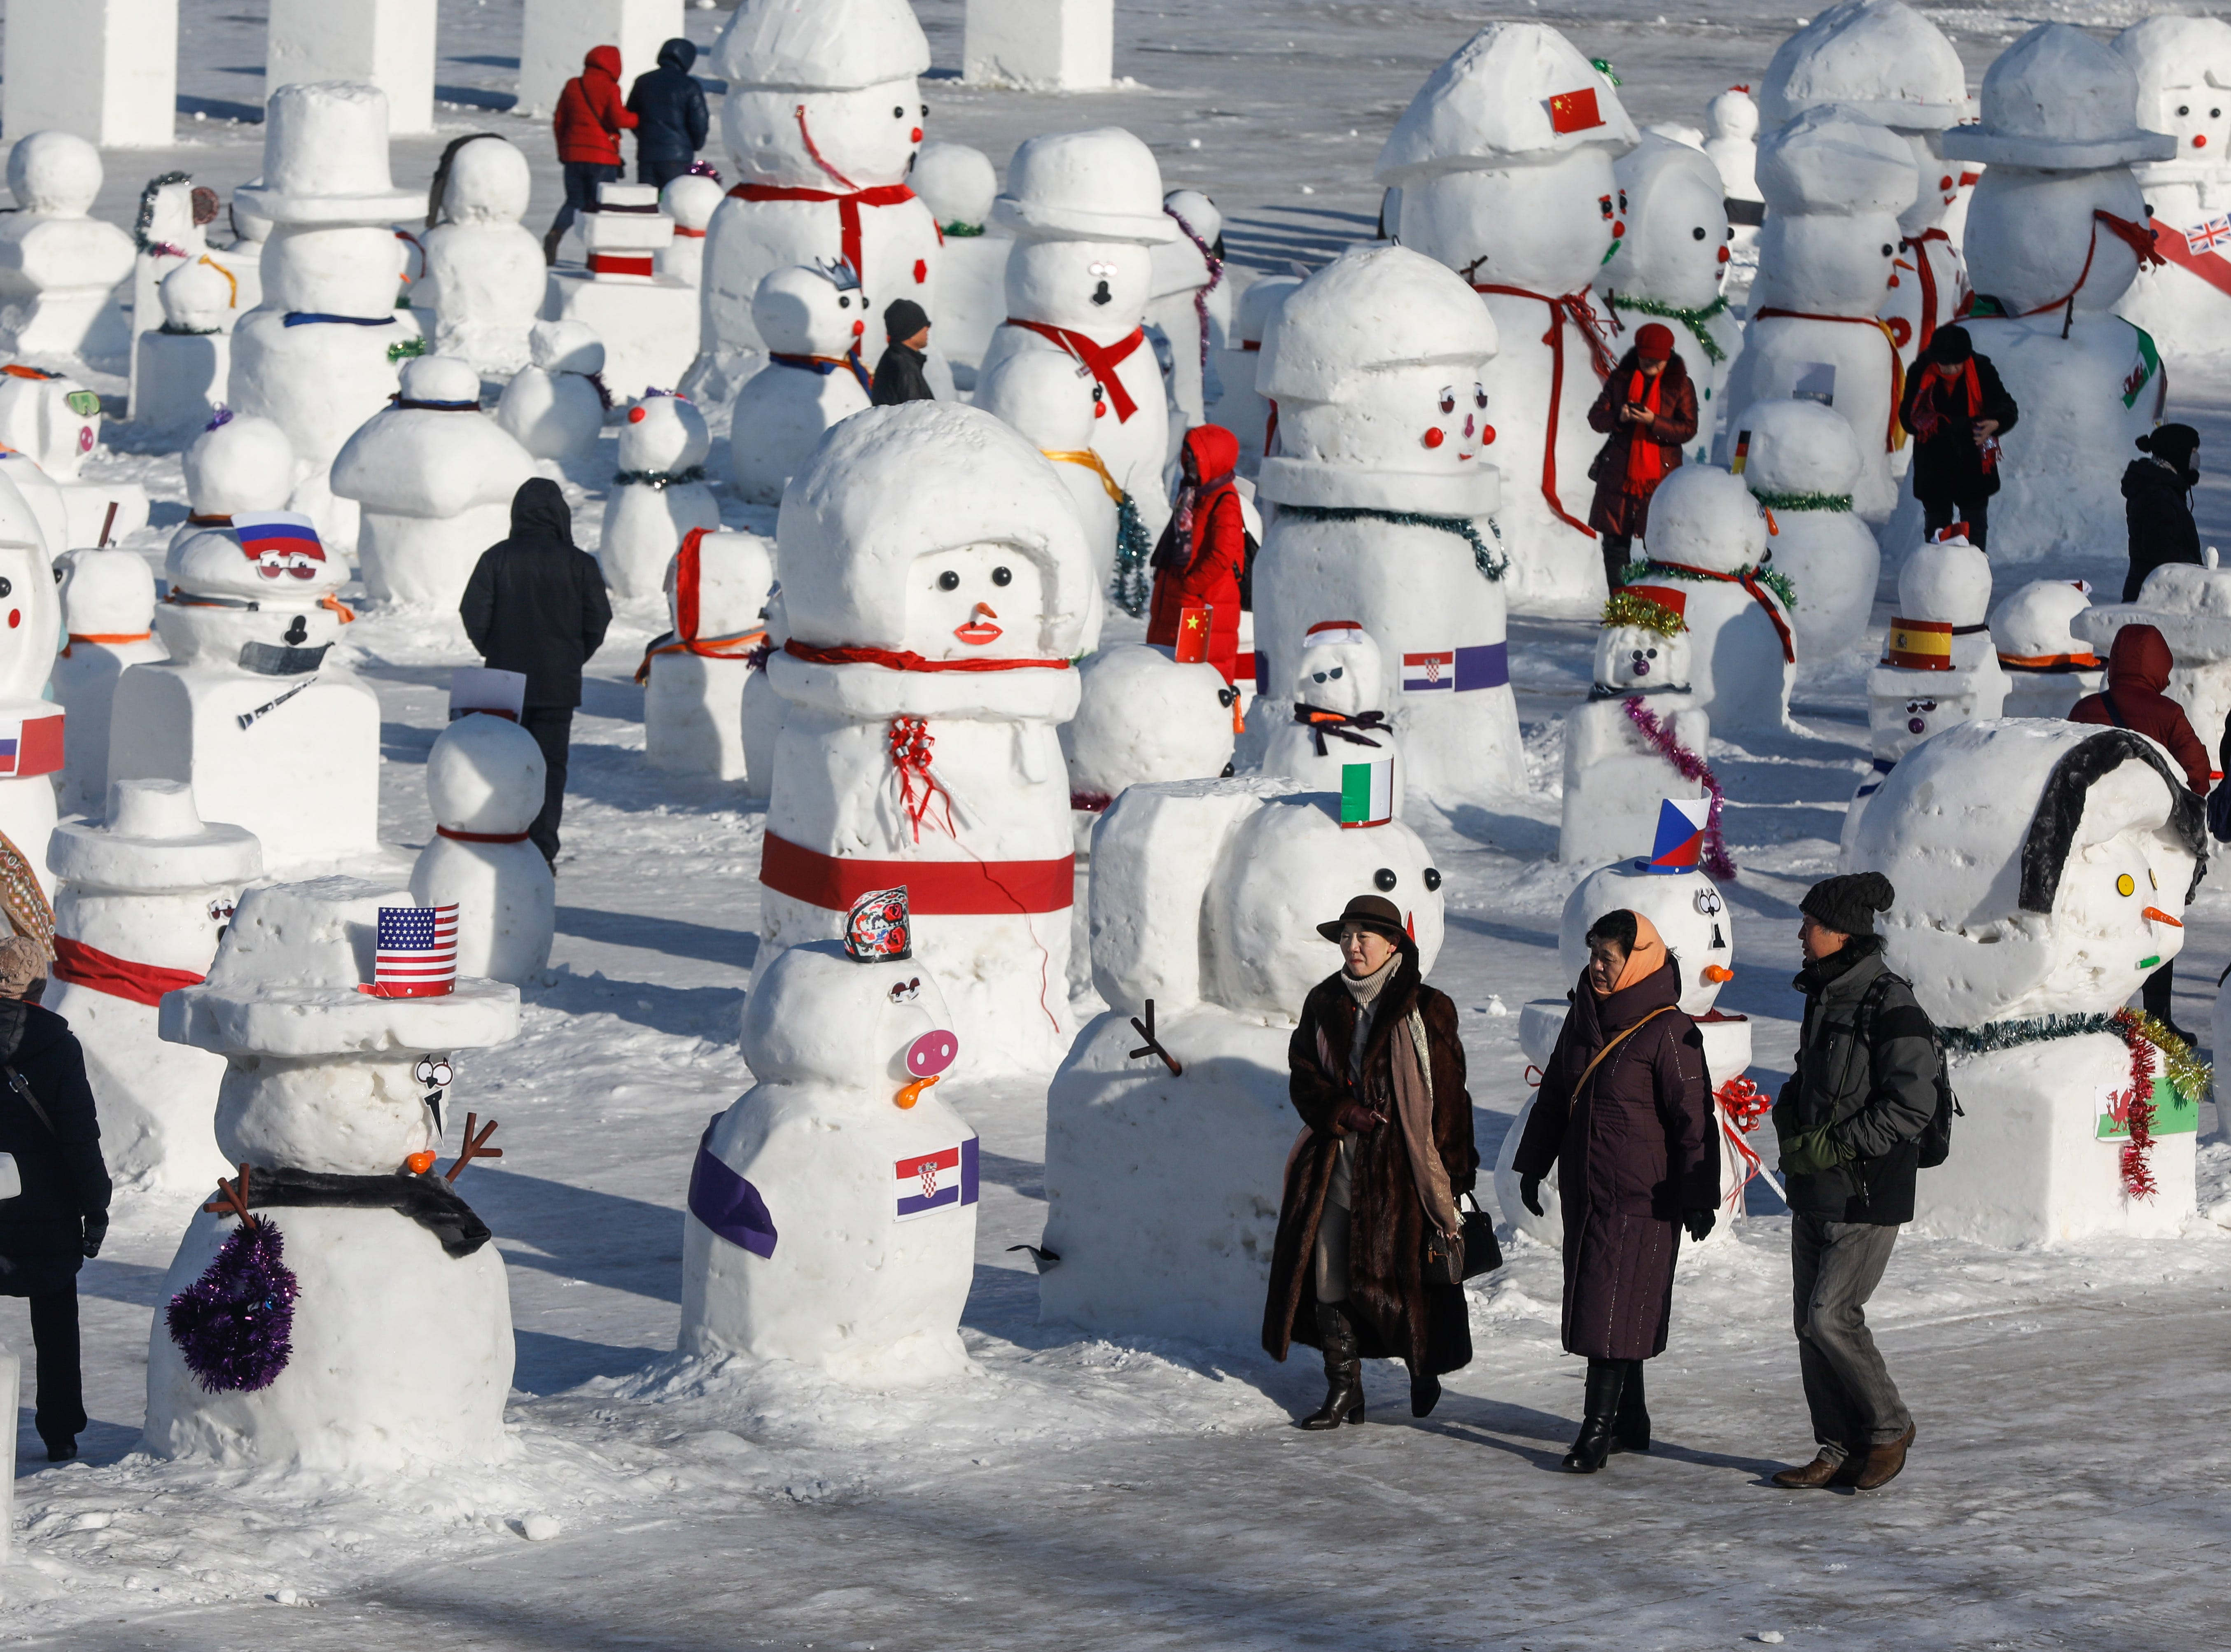 People walk next to snowmen at the Songhua River during the annual International Ice and Snow Festival in Harbin city, China's northern Heilongjiang province on Jan. 5, 2019.